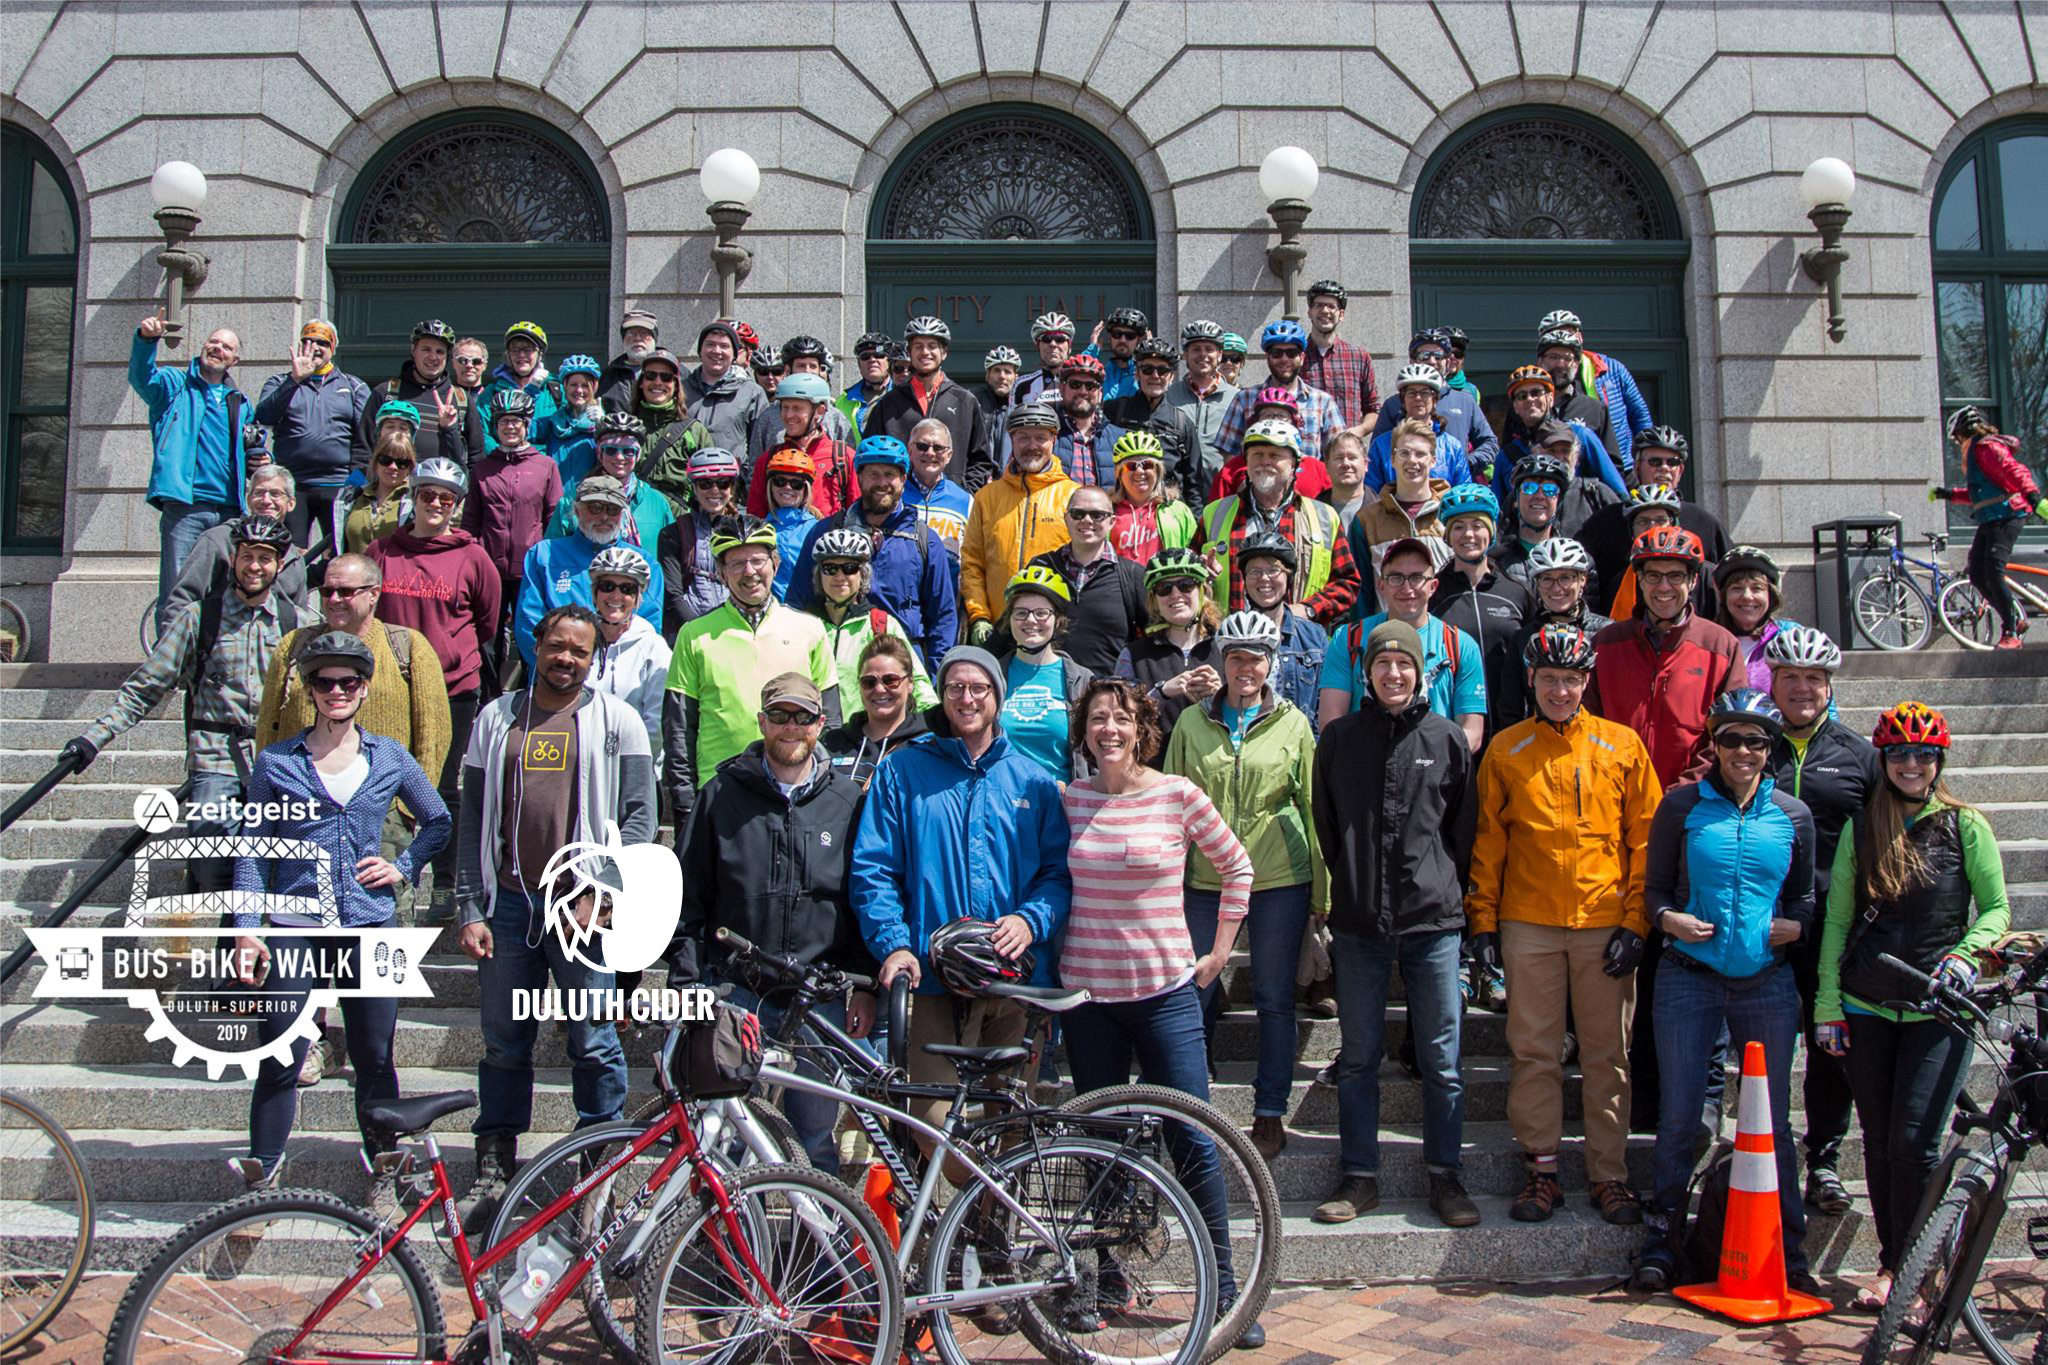 duluth-cider-zeitgeist-arts-mayors-bike-ride